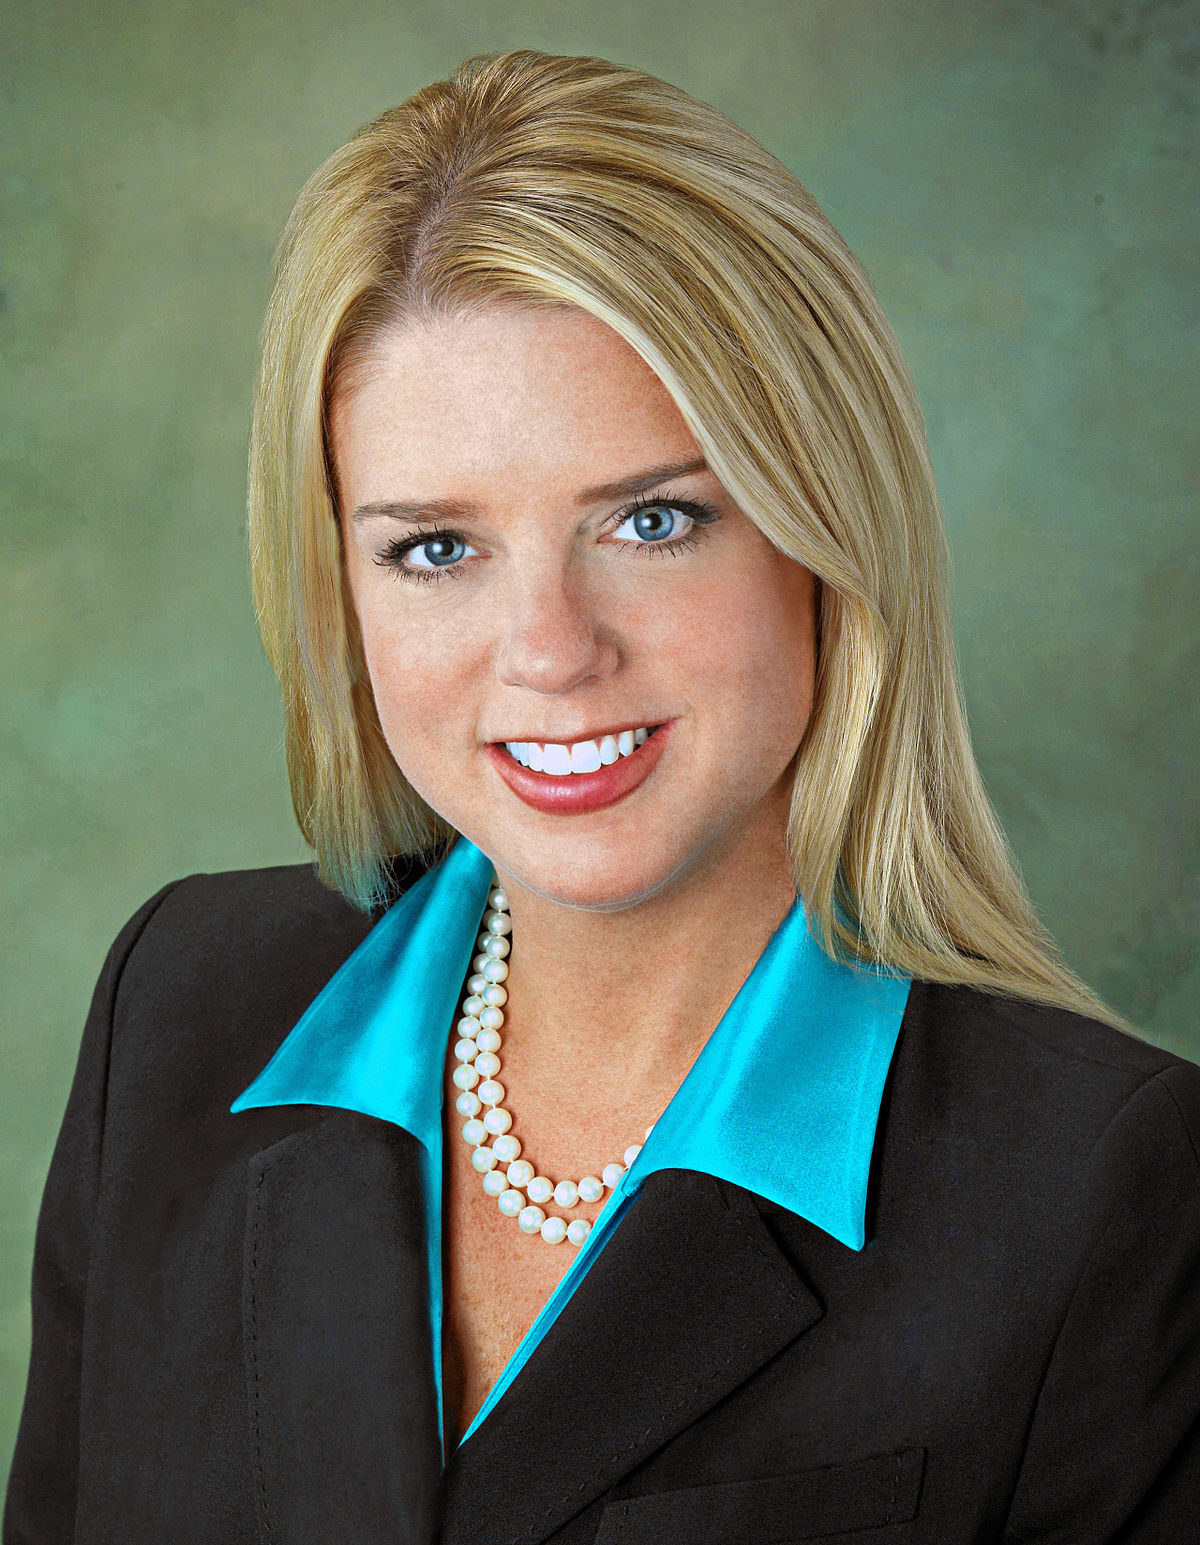 Pam bondi wikipedia for Best women pictures